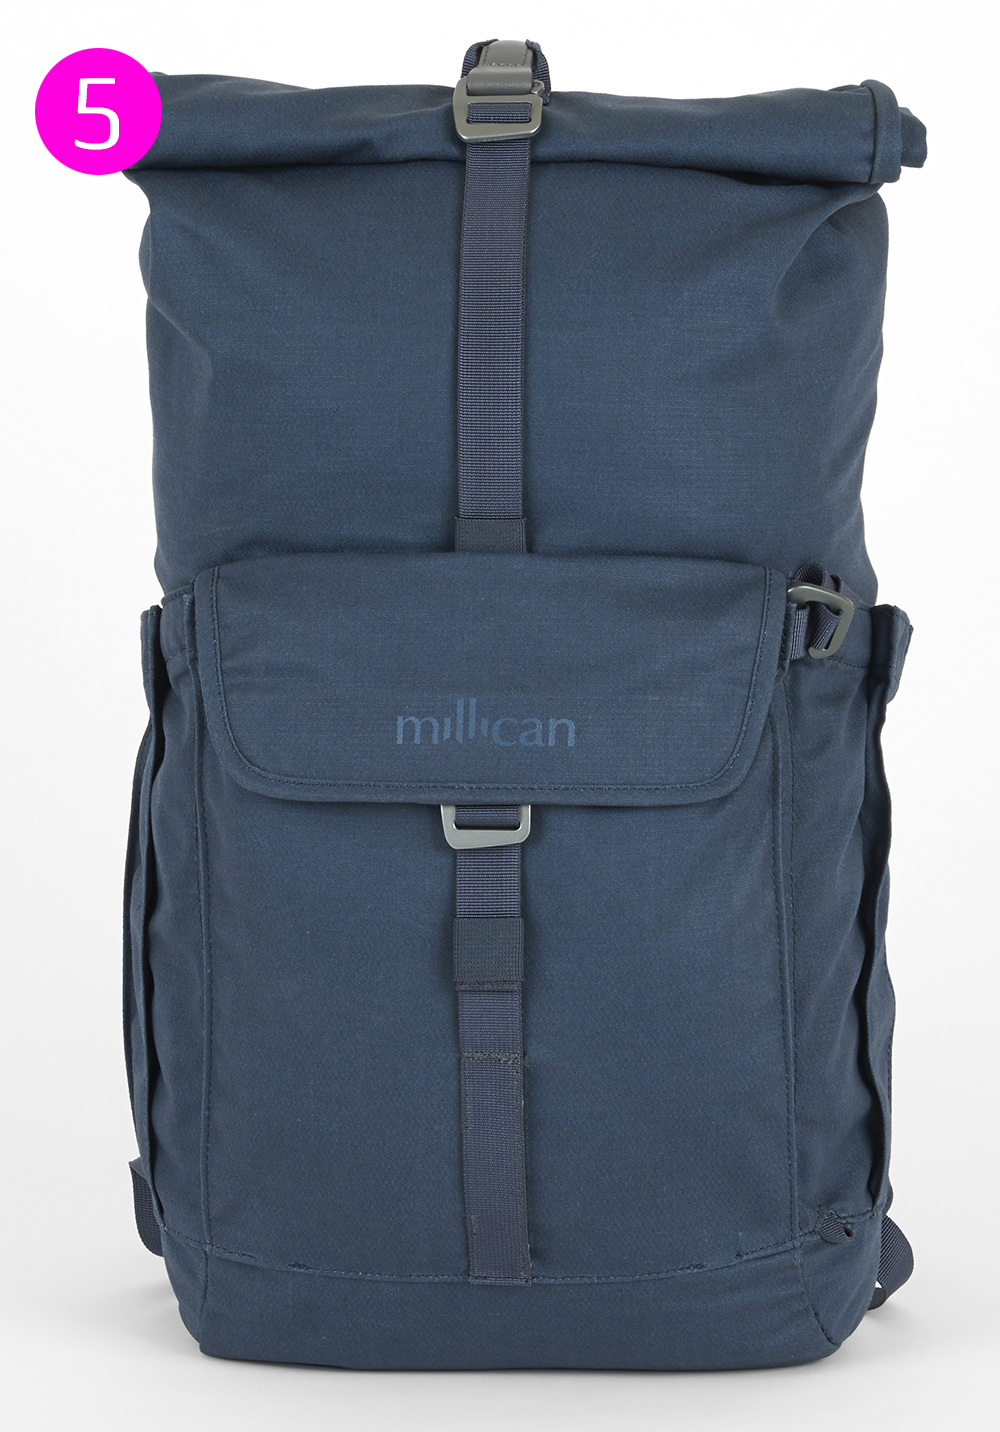 MILLICAN Smith The Roll Pack 25L_ueber frontlineshop.com_414000001_139,95 Euro